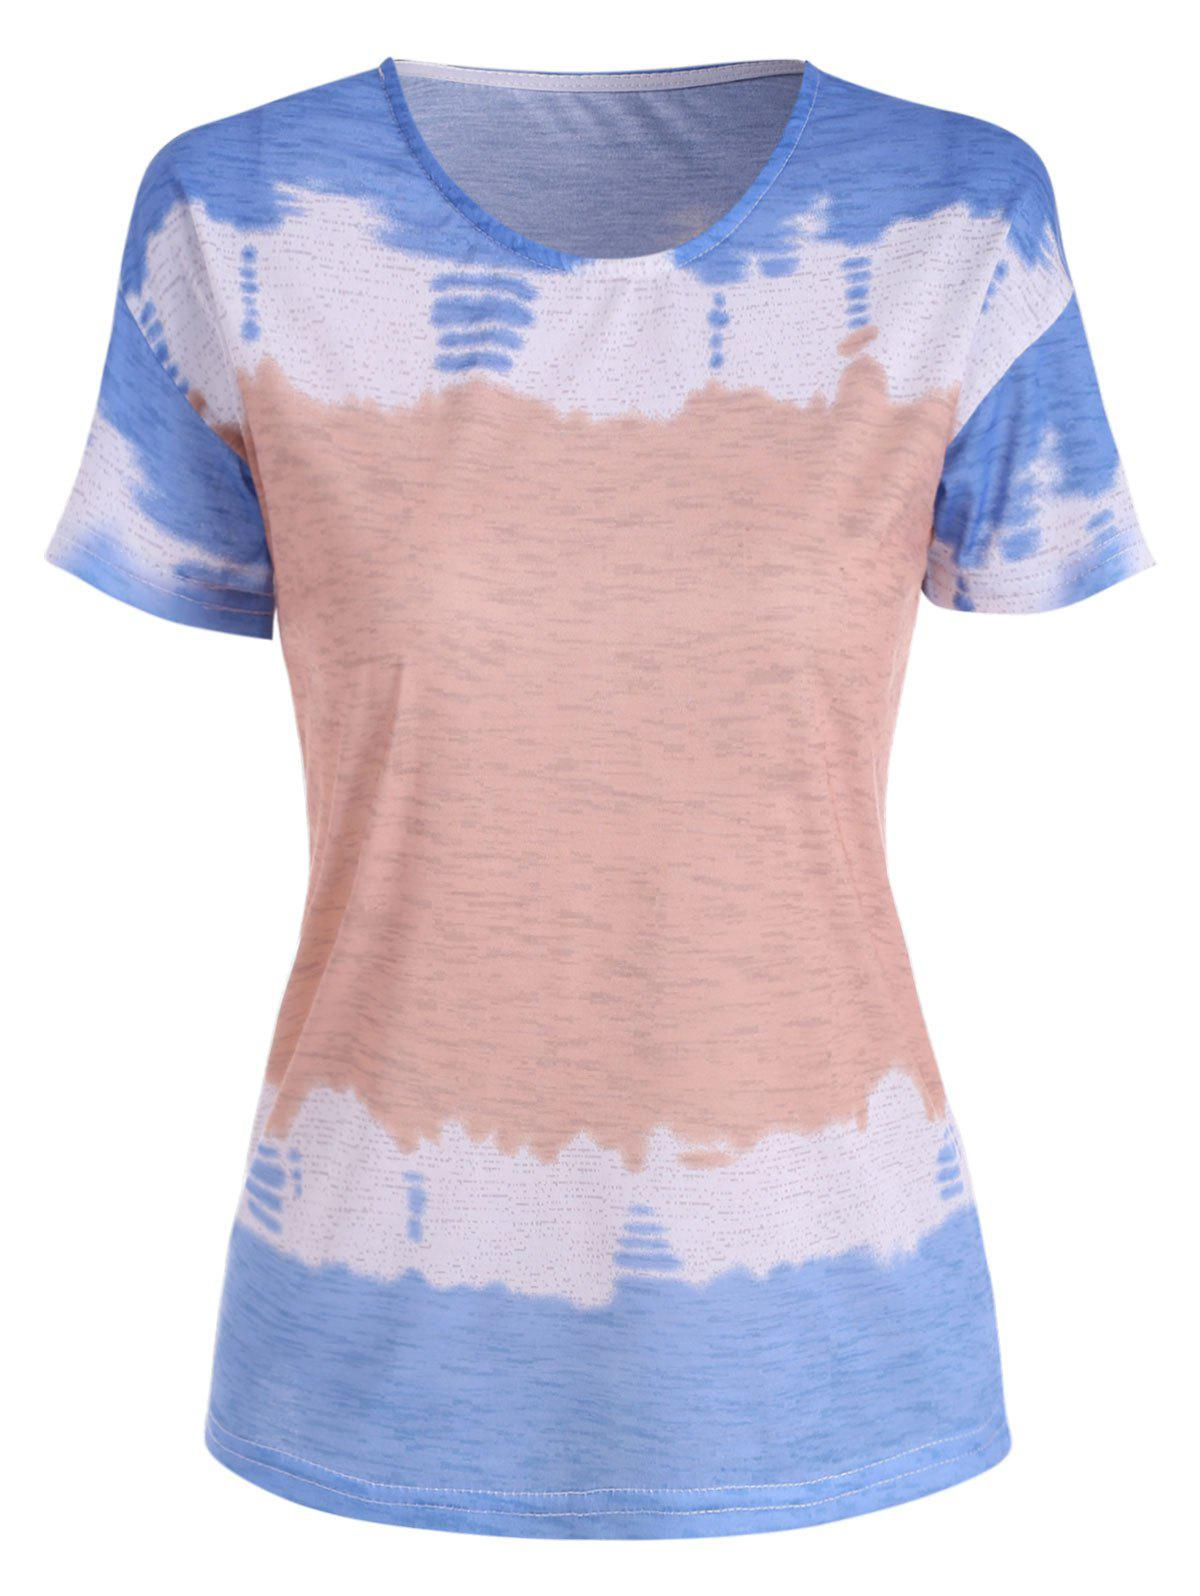 Shop Dip Dye Print Basic Tee